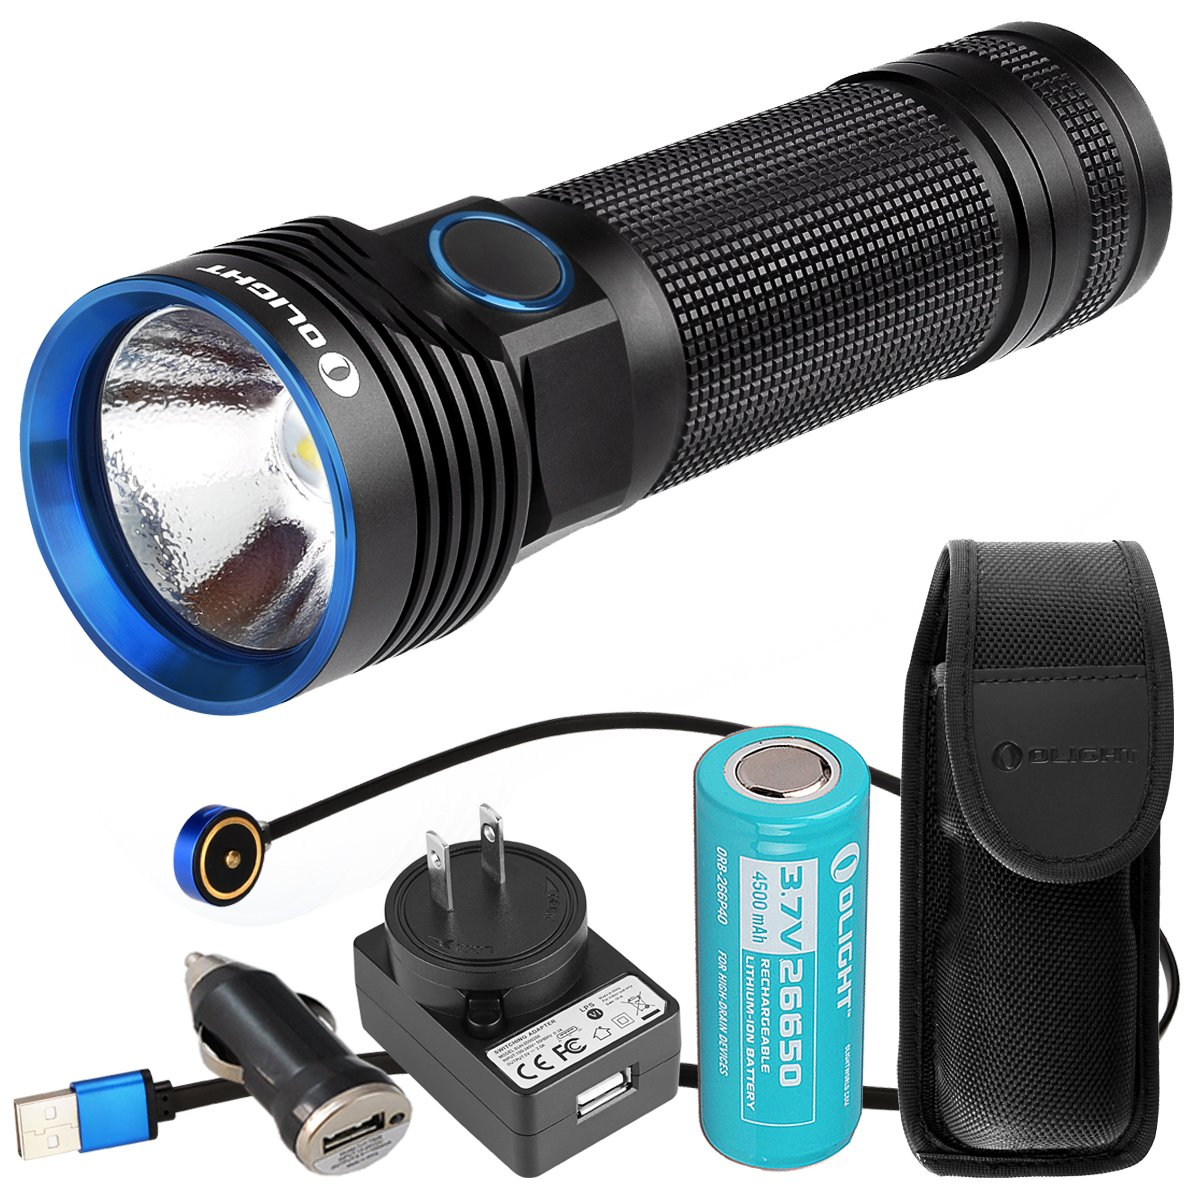 Olight R50 PRO Seeker 3200 Lumens CREE XHP70 Rechargeable LED Flashlight with LumenTac USB Car Adapter by Olight